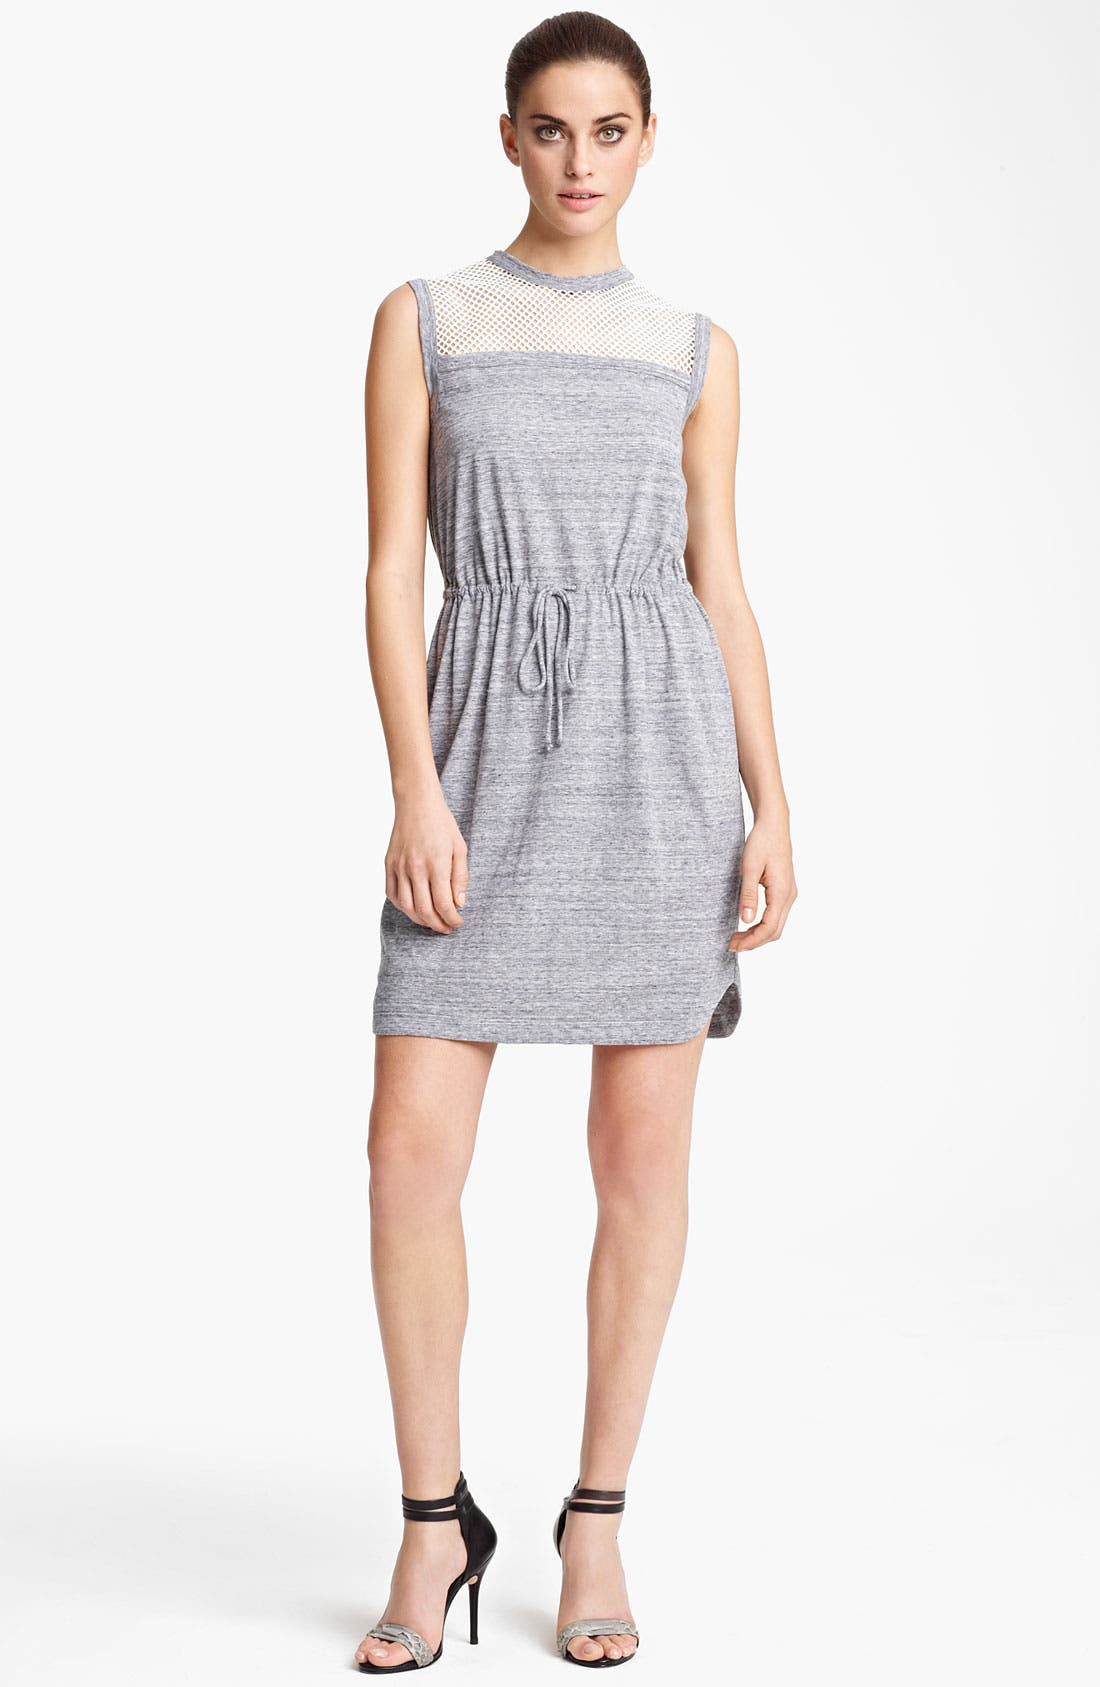 Main Image - Yigal Azrouël Sleeveless Jersey Dress